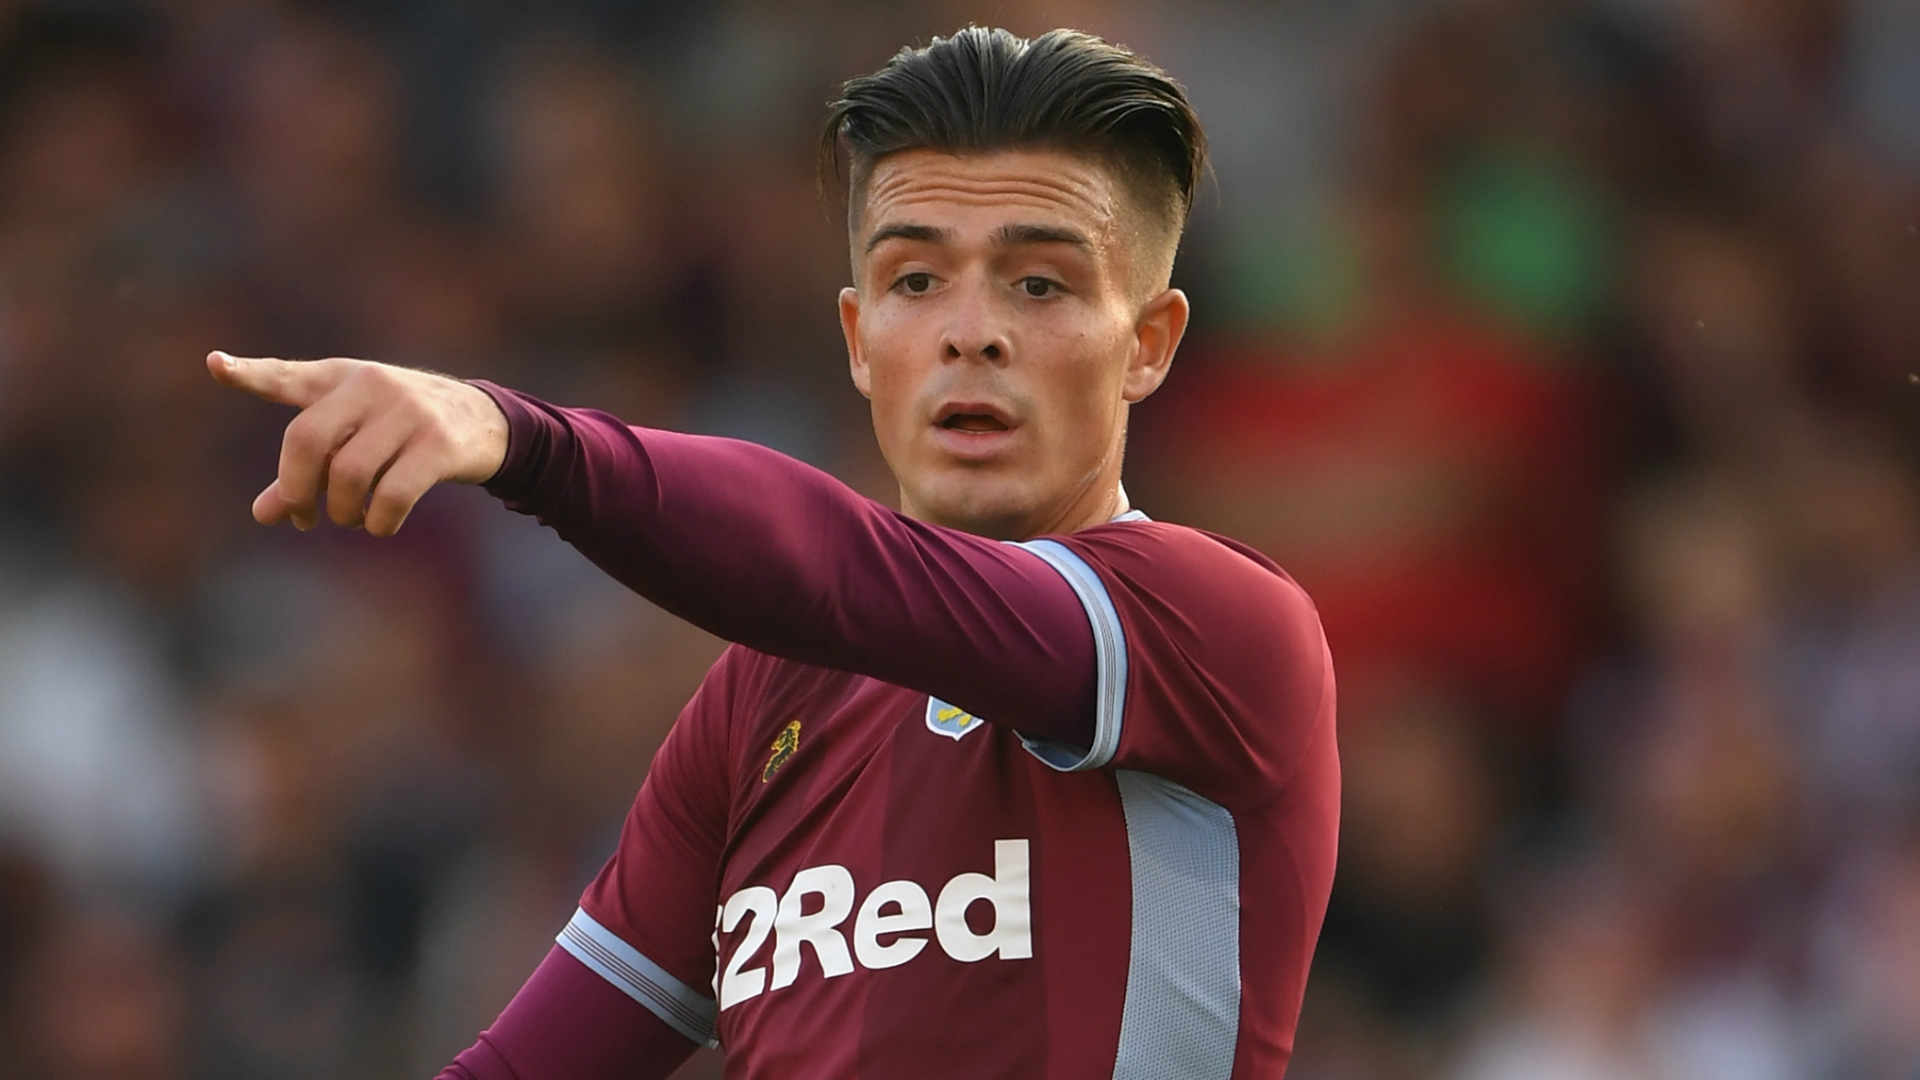 Harry Redknapp warns Jack Grealish about moving to Spurs